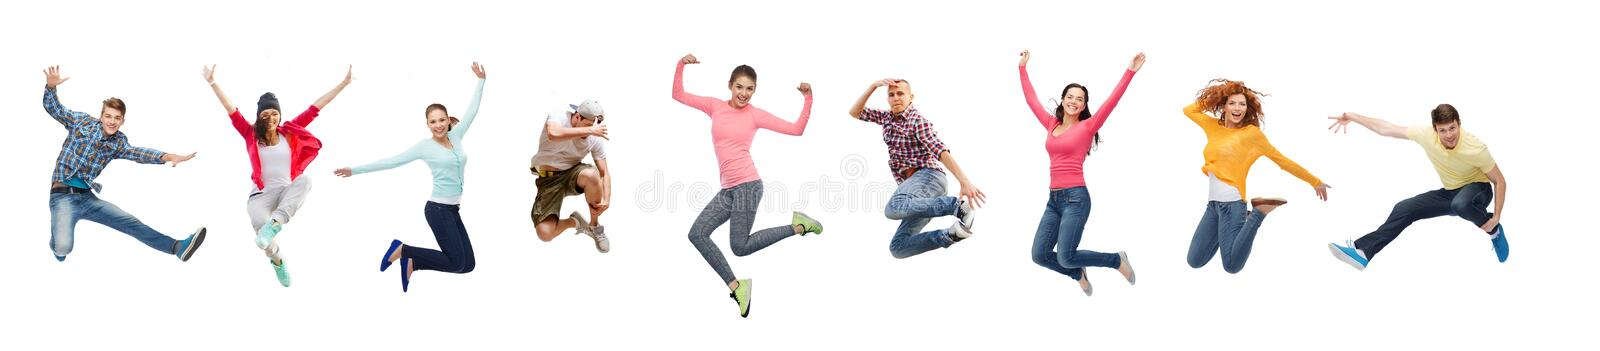 Group of people or teenagers jumping stock photos